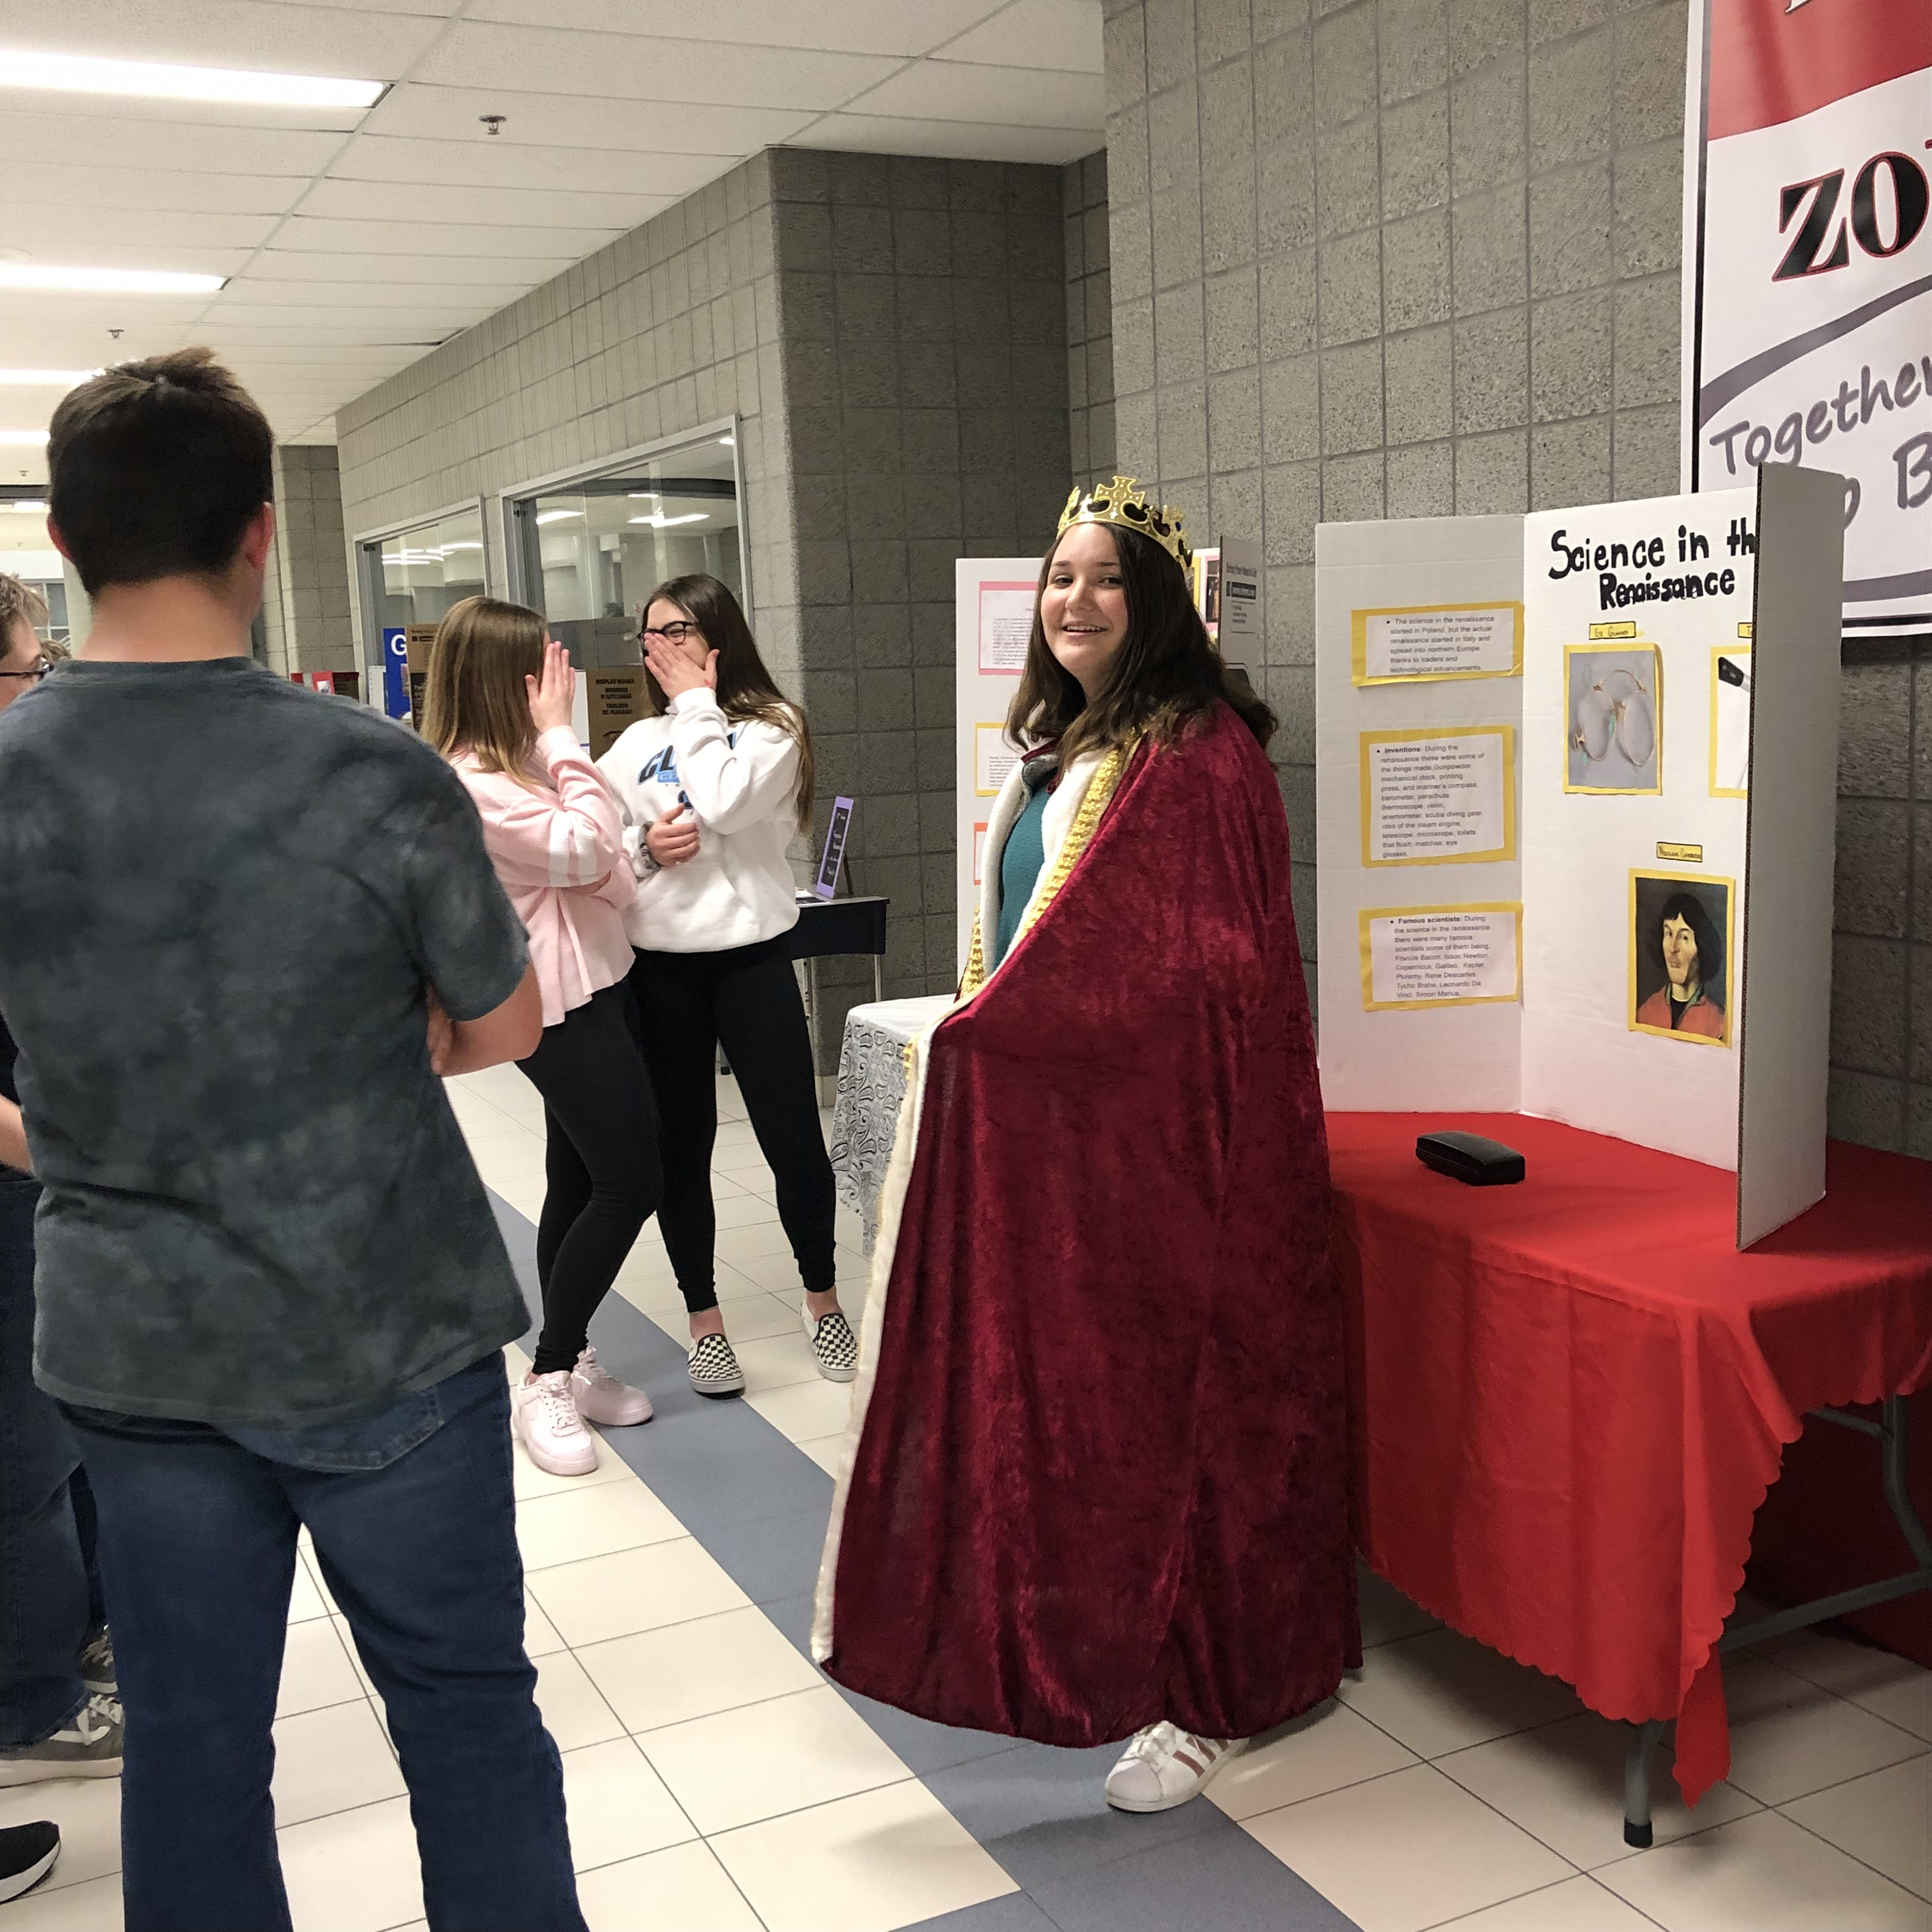 On Thursday, April 18, advanced students in seventh and eighth grade at Clark celebrated Shakespeare with our third annual party in his honor. One of the many activities included seventh grade advanced students teaching the fifth and sixth grade advanced students about life during the Elizabethan Era.